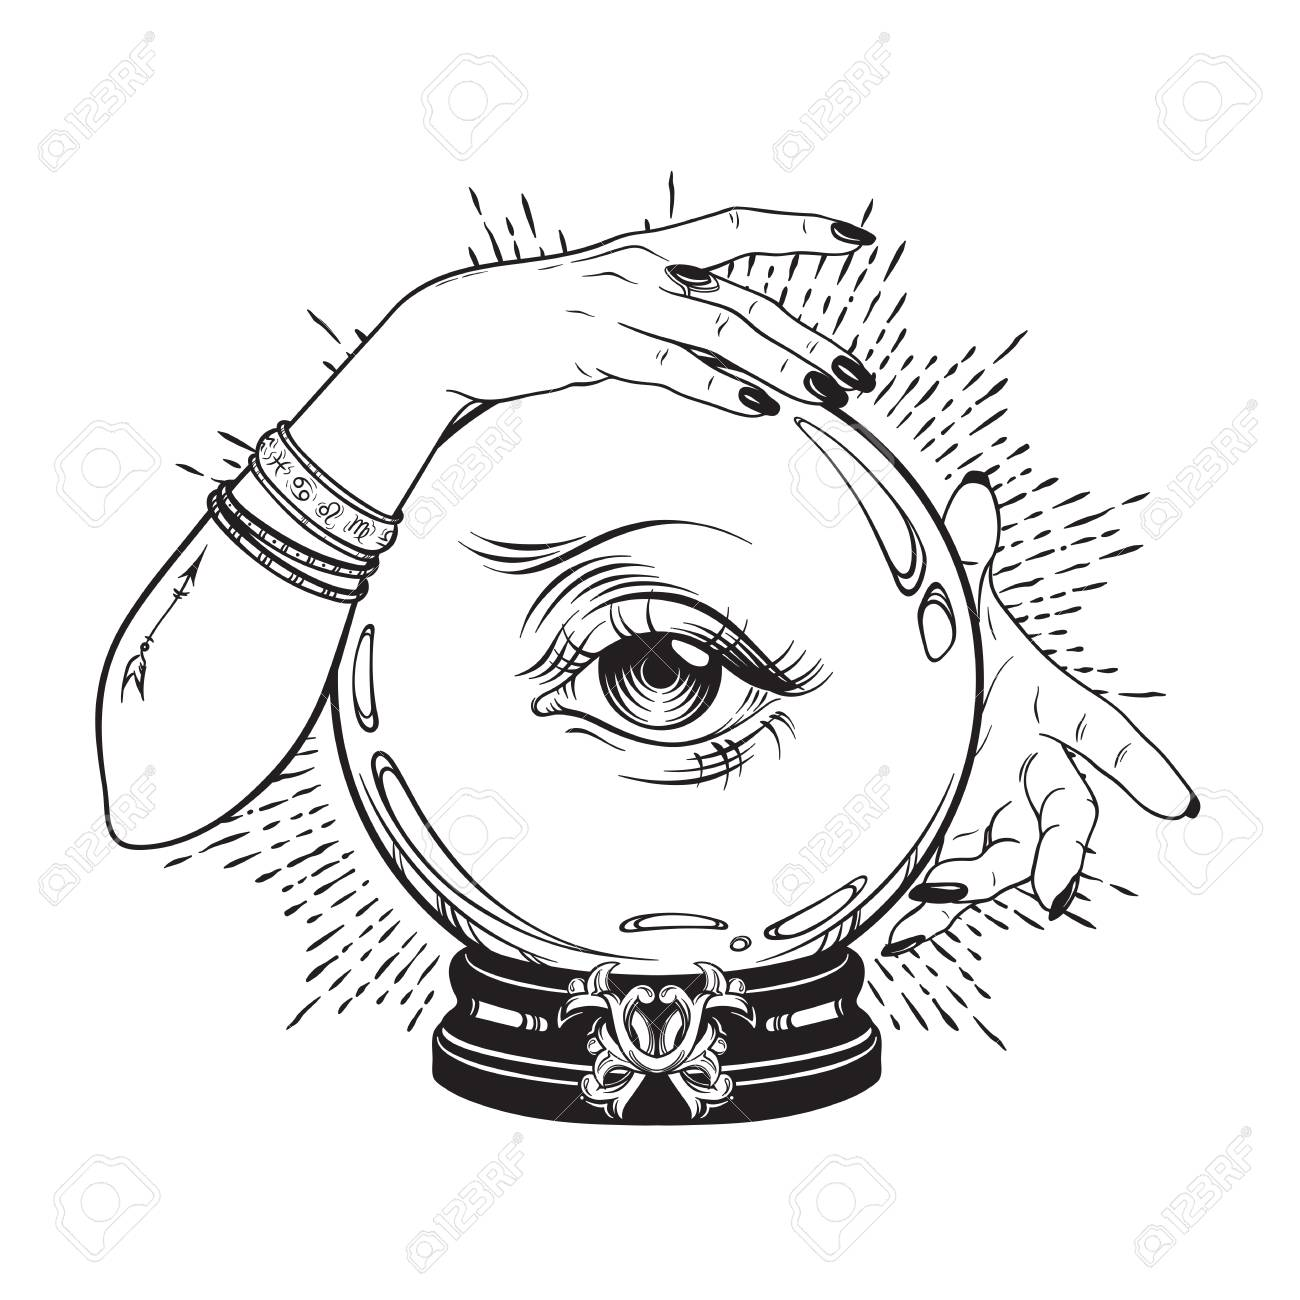 Hand drawn magic crystal ball with eye of providence in hands of fortune teller. Boho chic line art tattoo, poster or altar veil print design vector illustration - 103010579